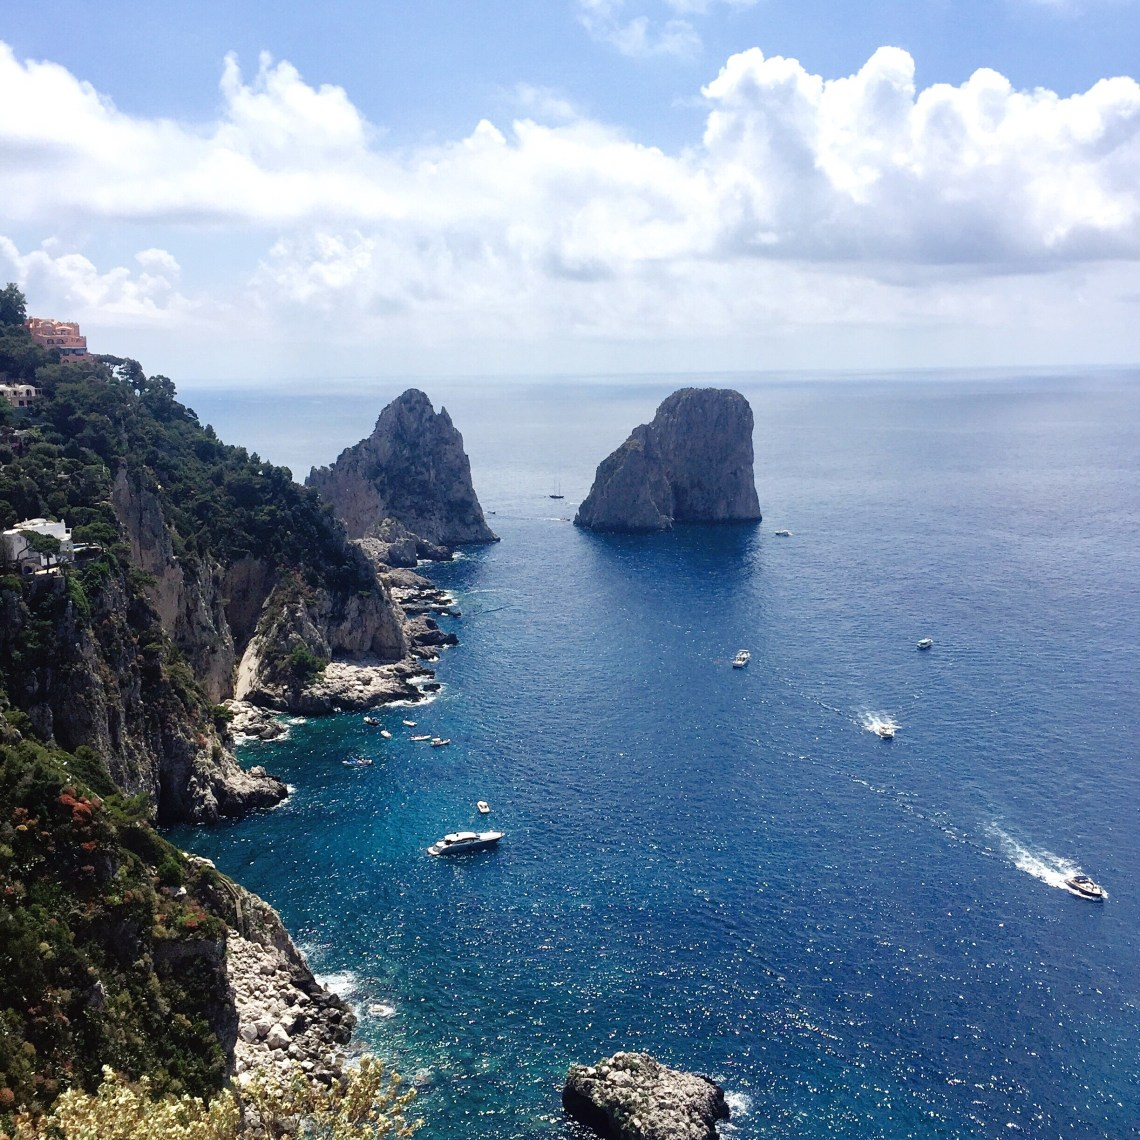 Capri in June